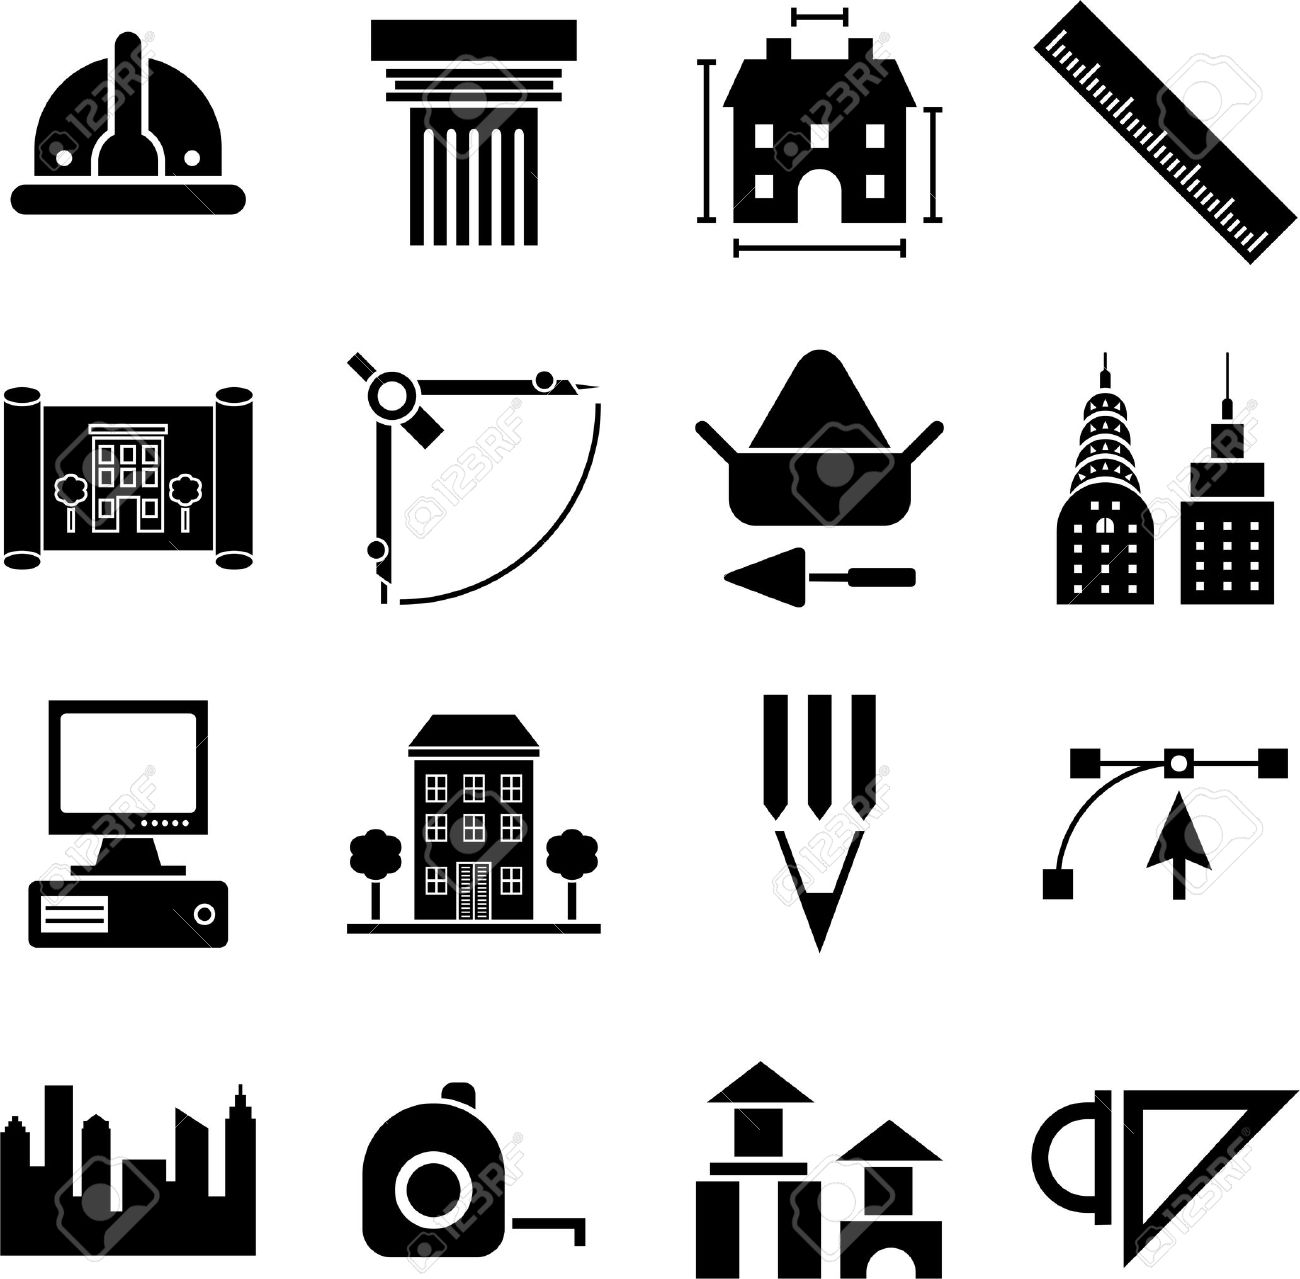 architecture and construction icons royalty cliparts vectors architecture and construction icons stock vector 23644281